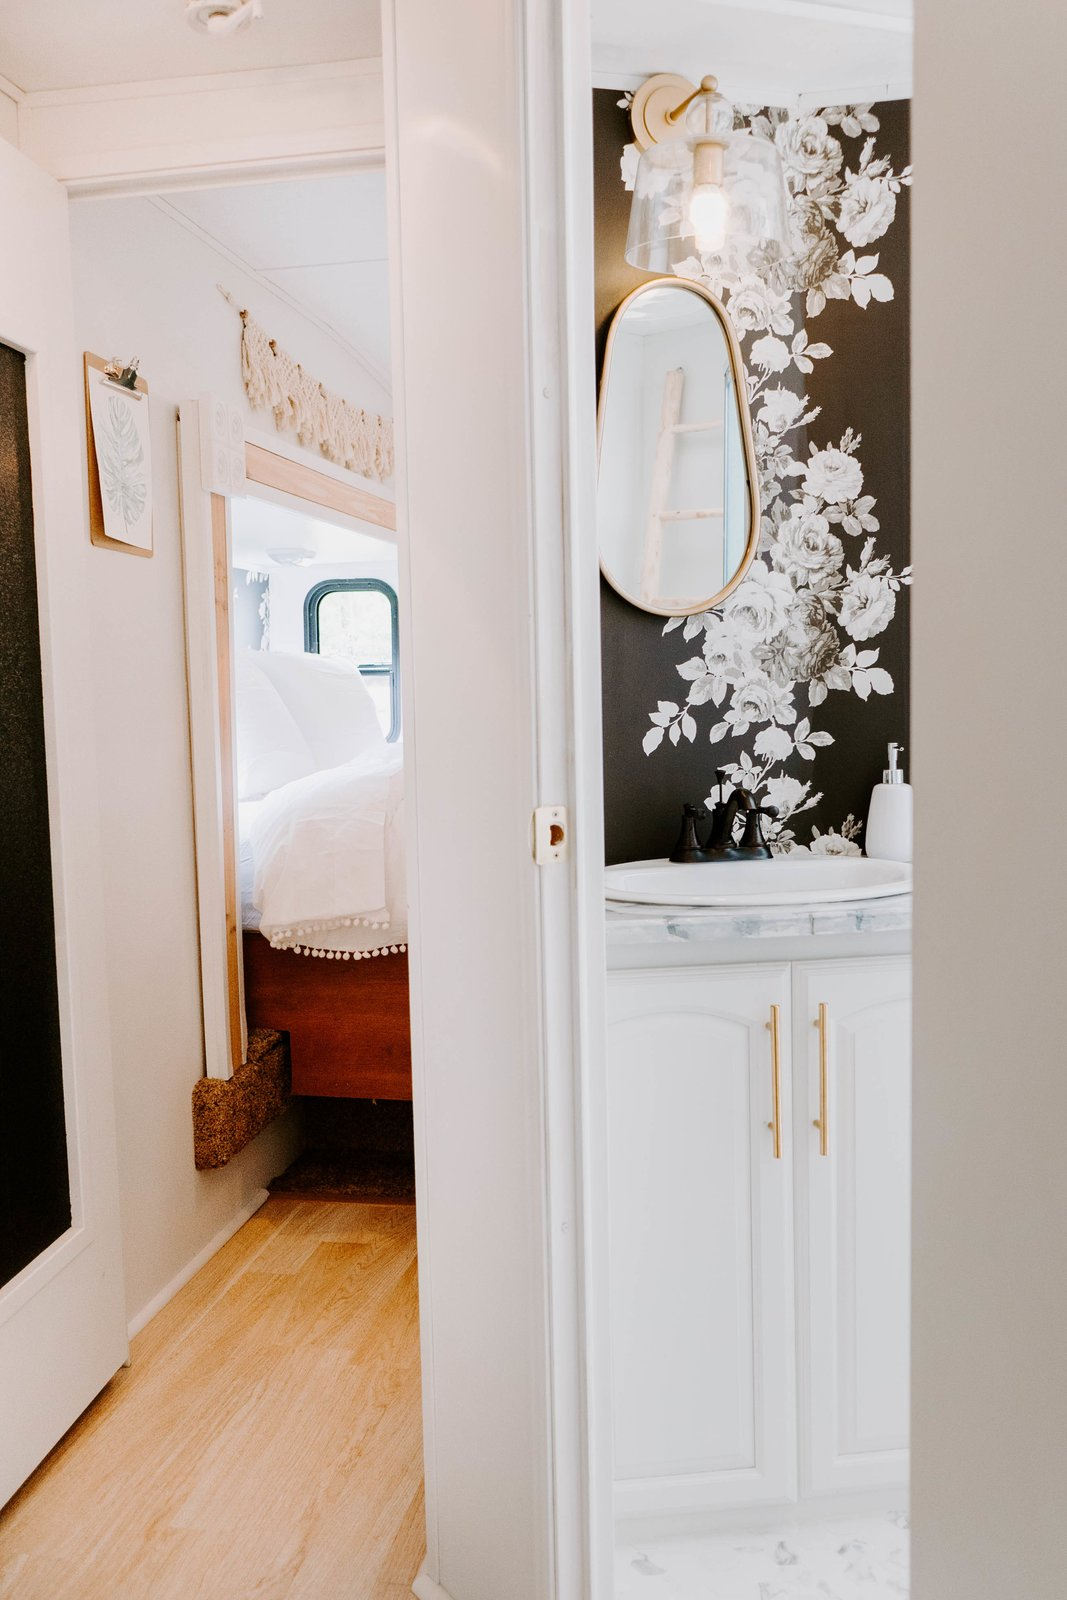 """Bath Room, Wall Lighting, Marble Counter, Drop In Sink, and Porcelain Tile Floor """"The bathroom may have been my favorite transformation,"""" explains Lauren. """"I spotted some beautiful inspiration from Studio McGee and I was hooked on the floral wallpaper idea.""""    Photo 10 of 14 in Embark on Your Next Road Trip in This Renovated Camper For $35K from The Cougar"""